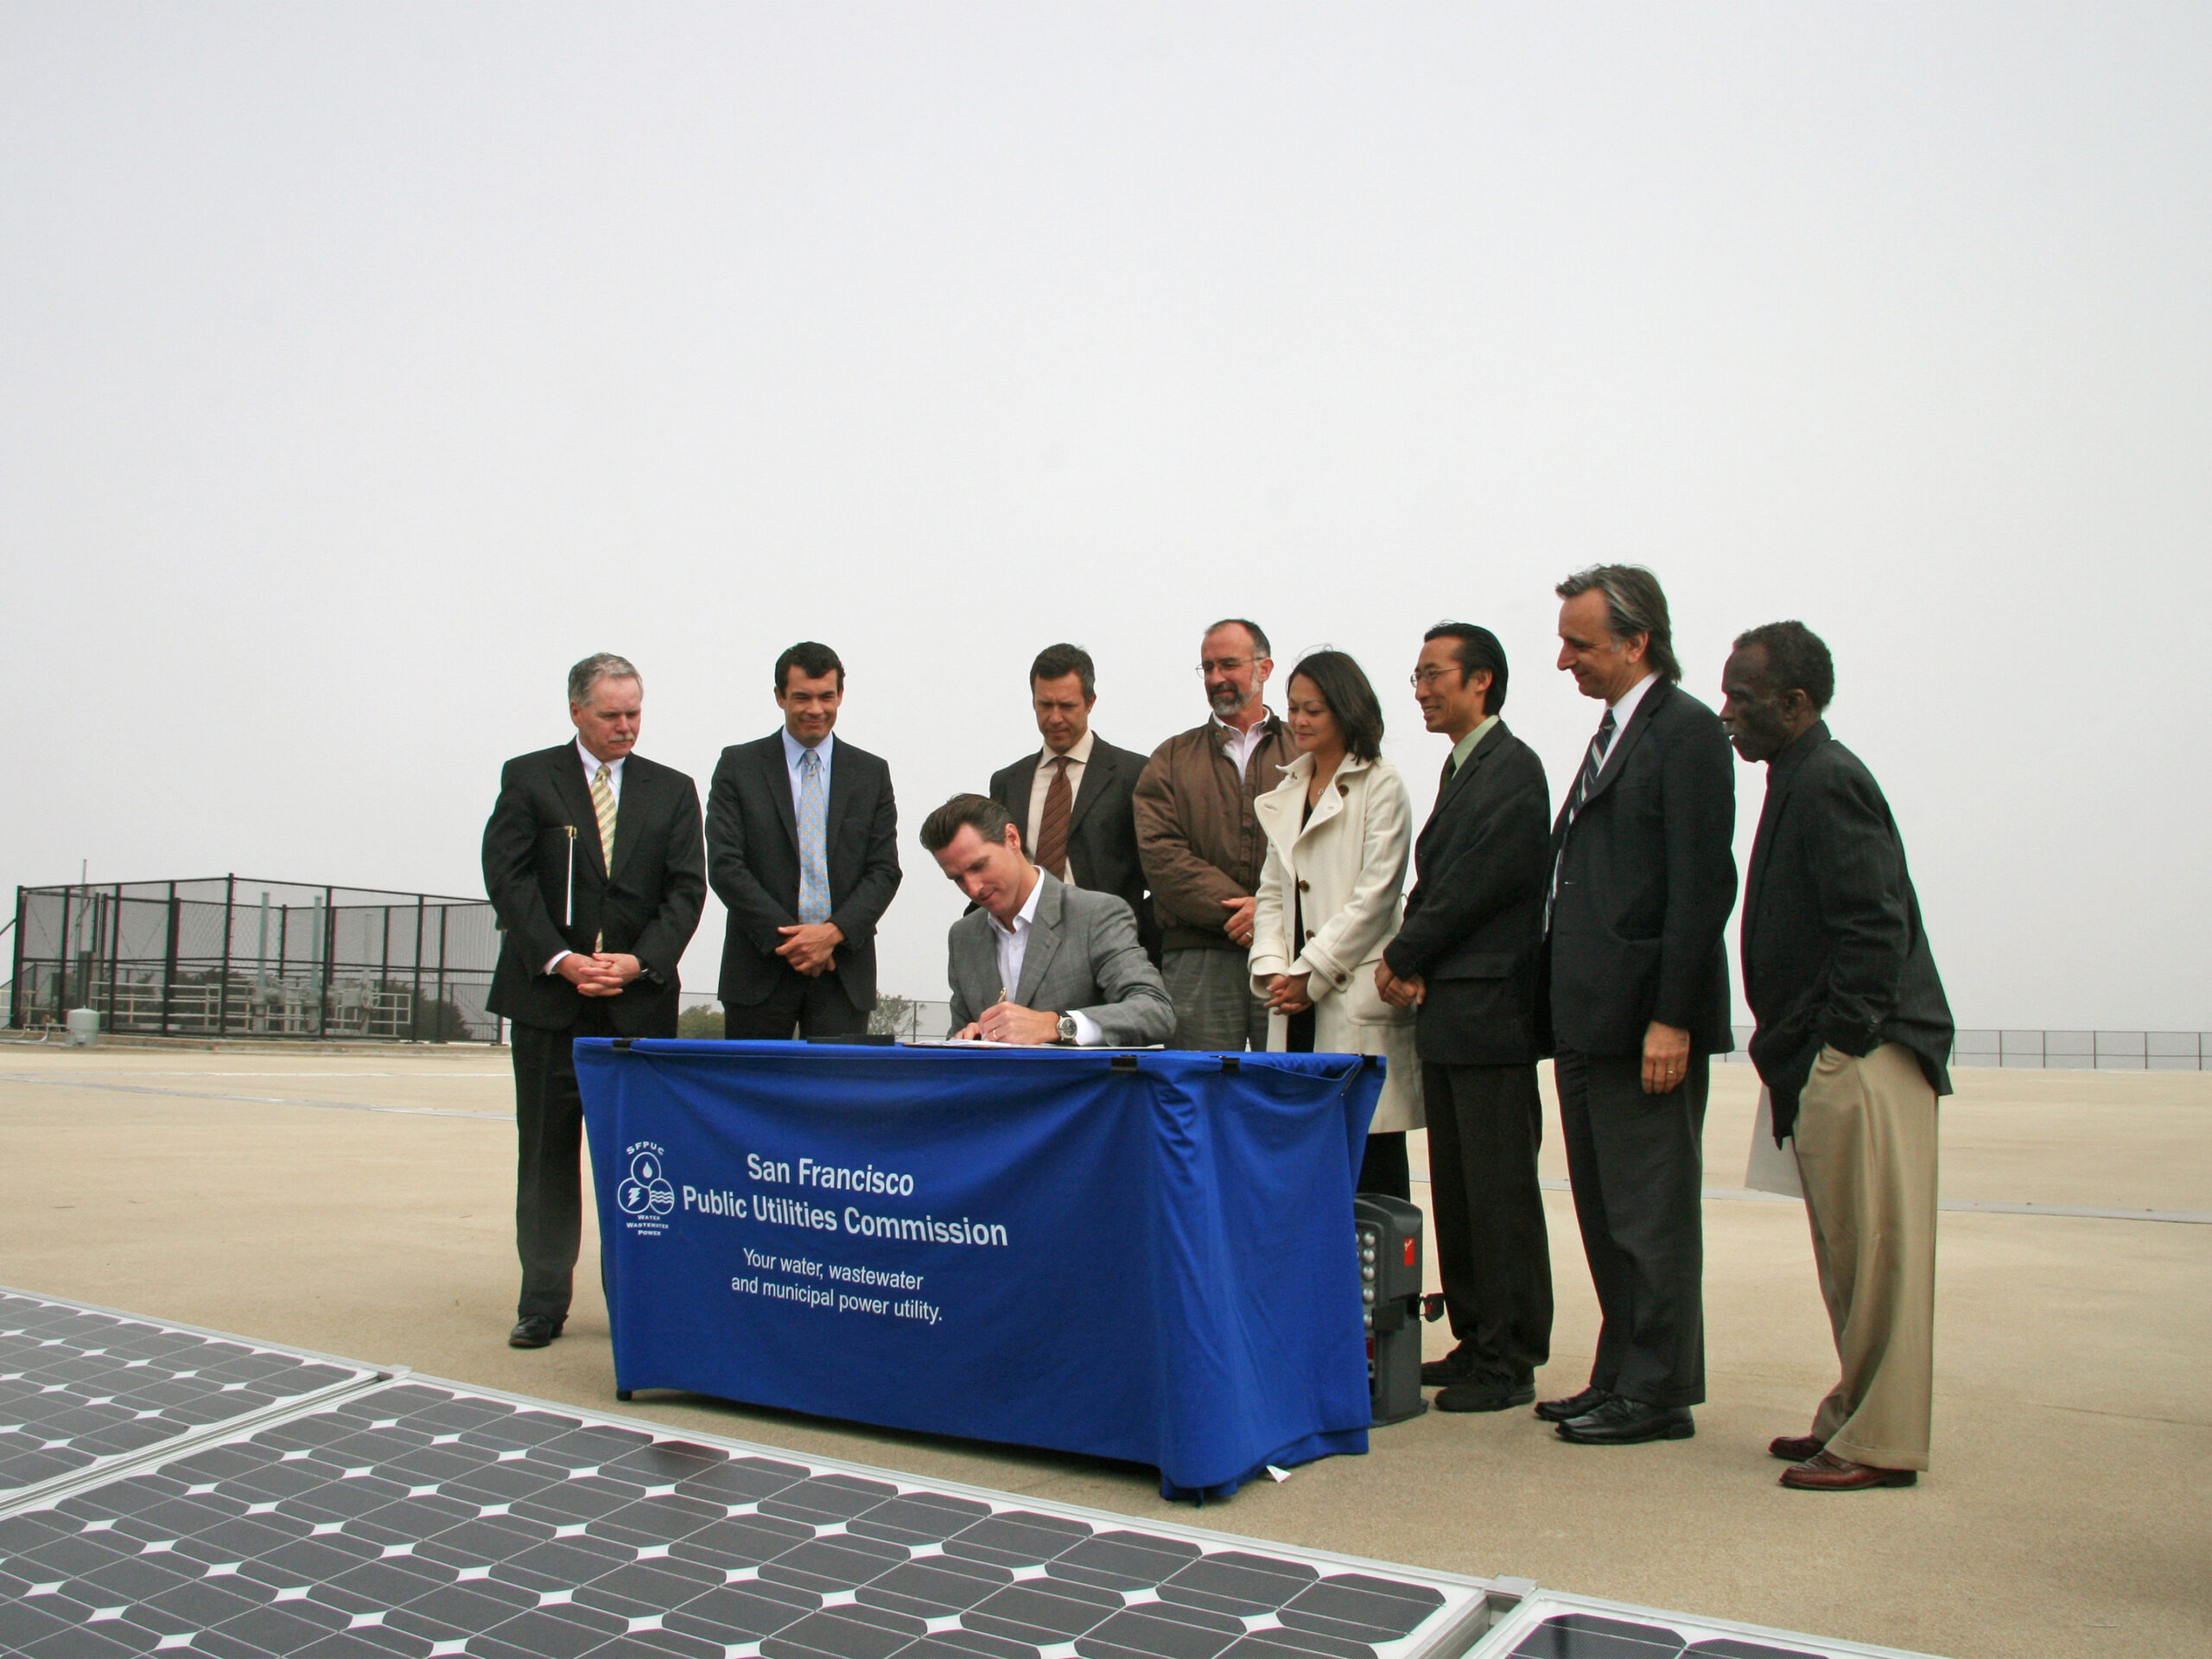 Adam at the San Francisco Public Utilities Commission Signing in 2009, commissioning of the Sunset Reservoir Solar Project, one of the largest municipal solar projects of its time.